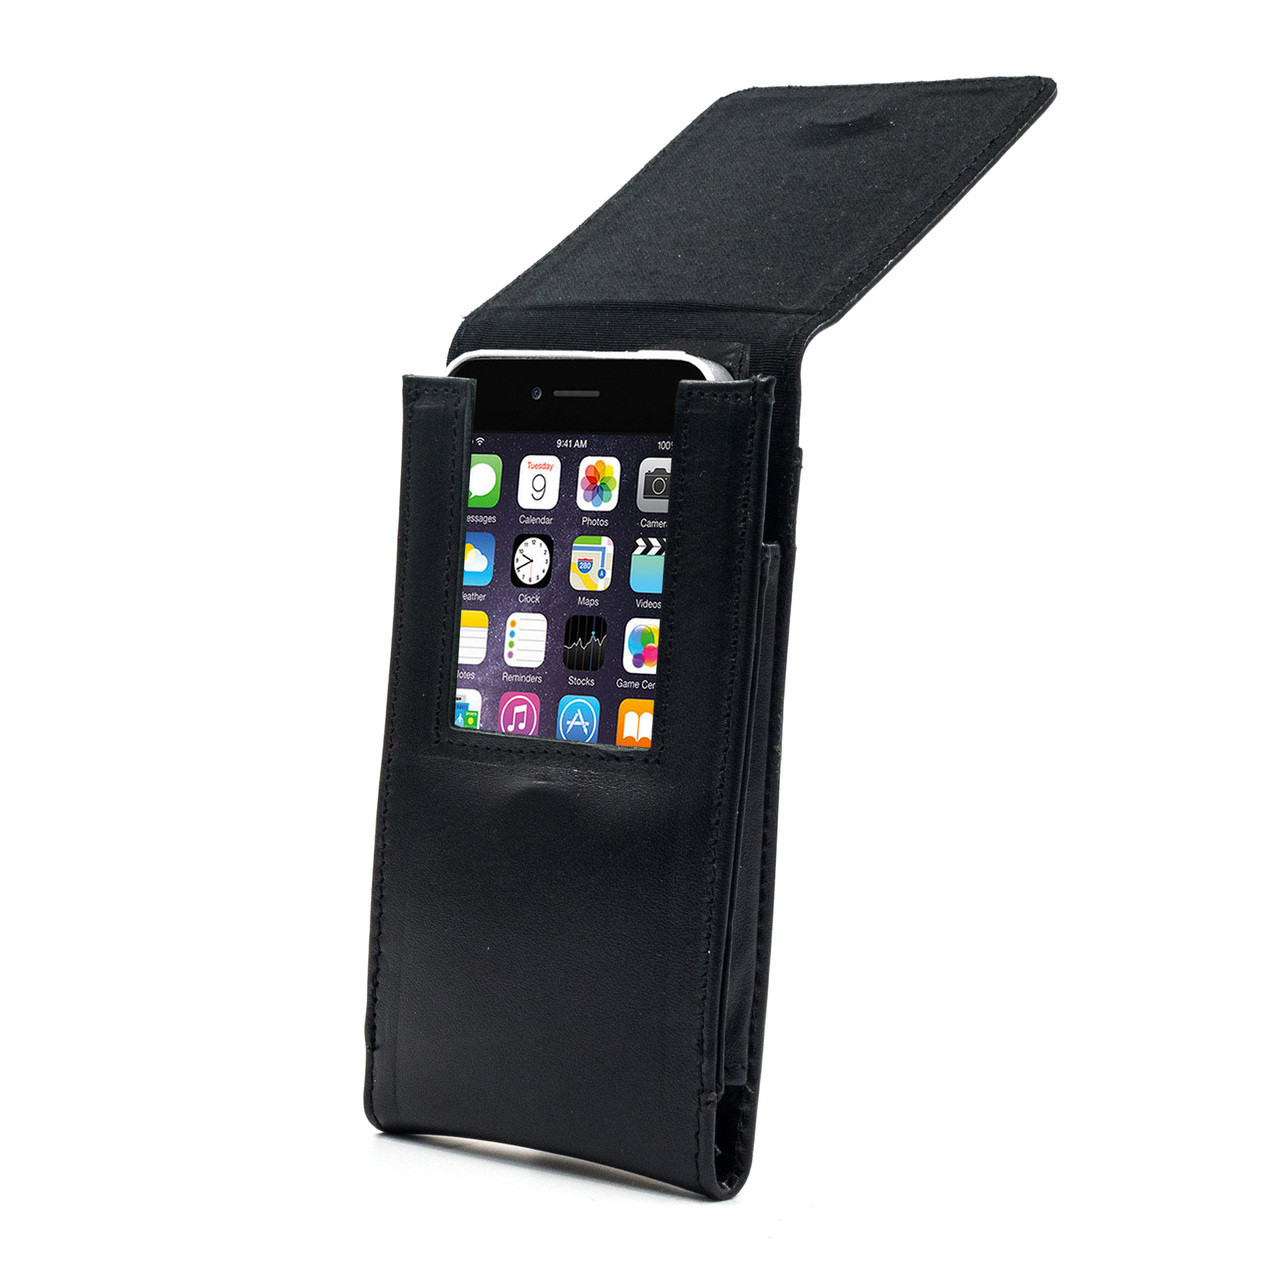 The Signature Cell Phone Holster